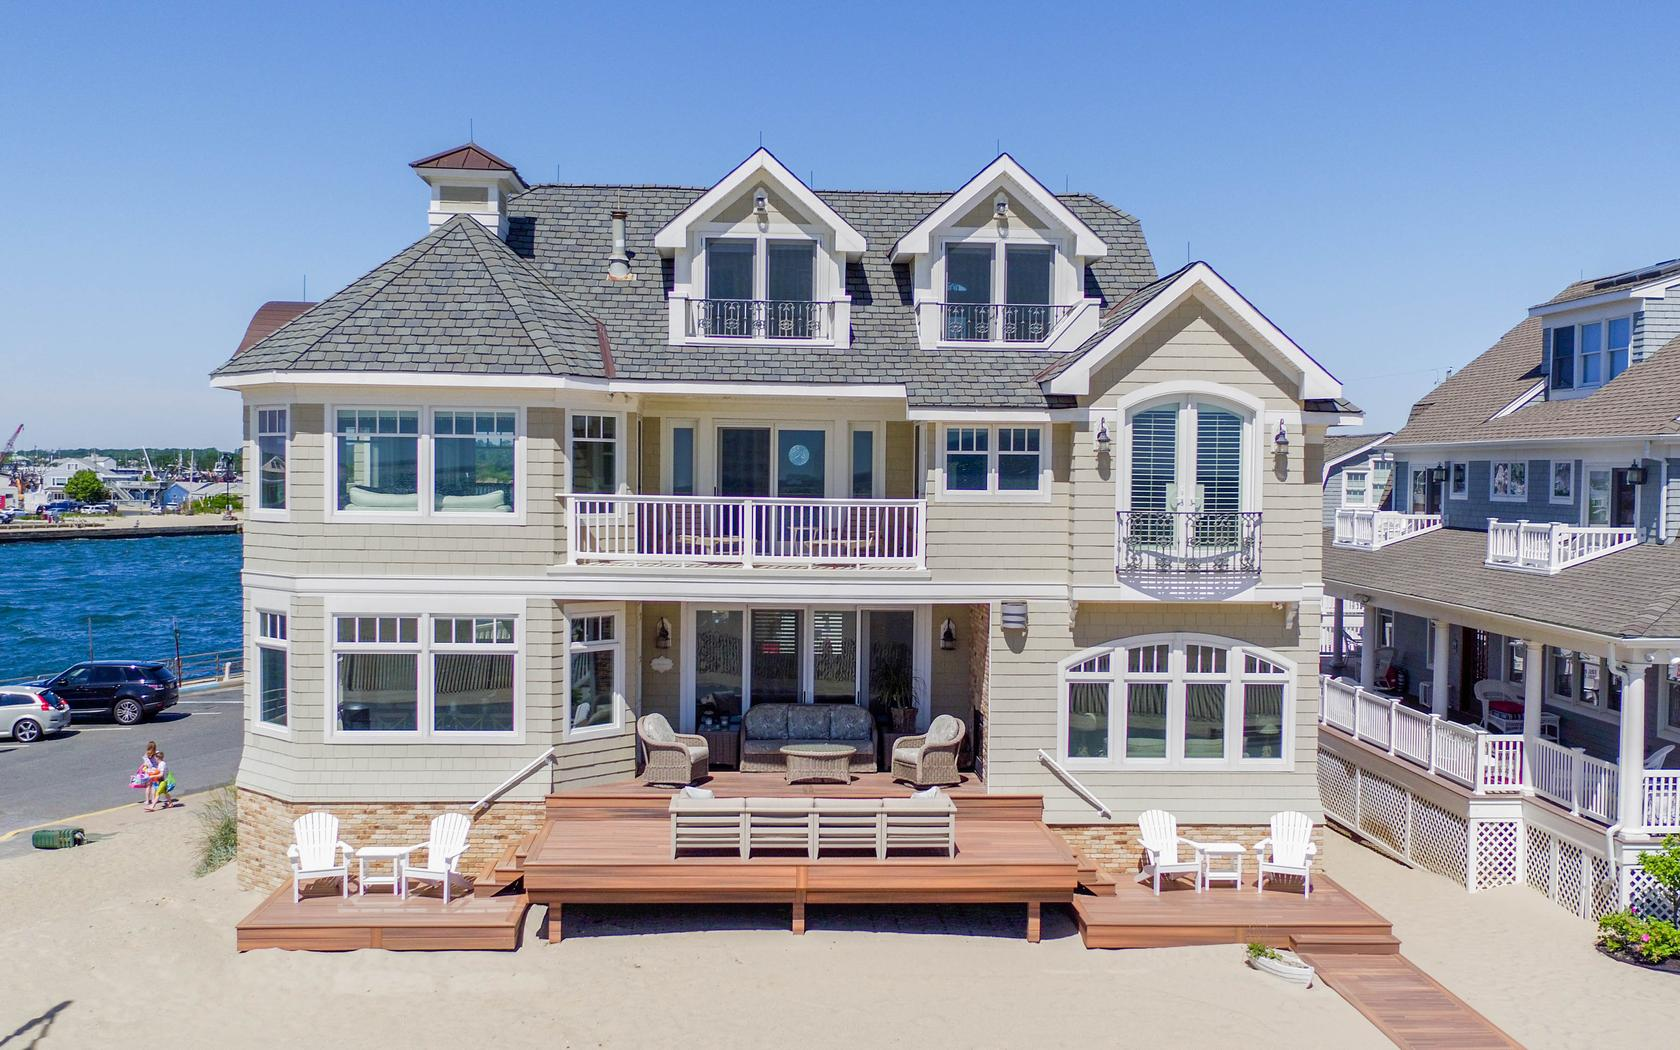 Single Family Home for Sale at Perfection Knows No Boundaries! 431 Beach Front Manasquan, New Jersey 08736 United States